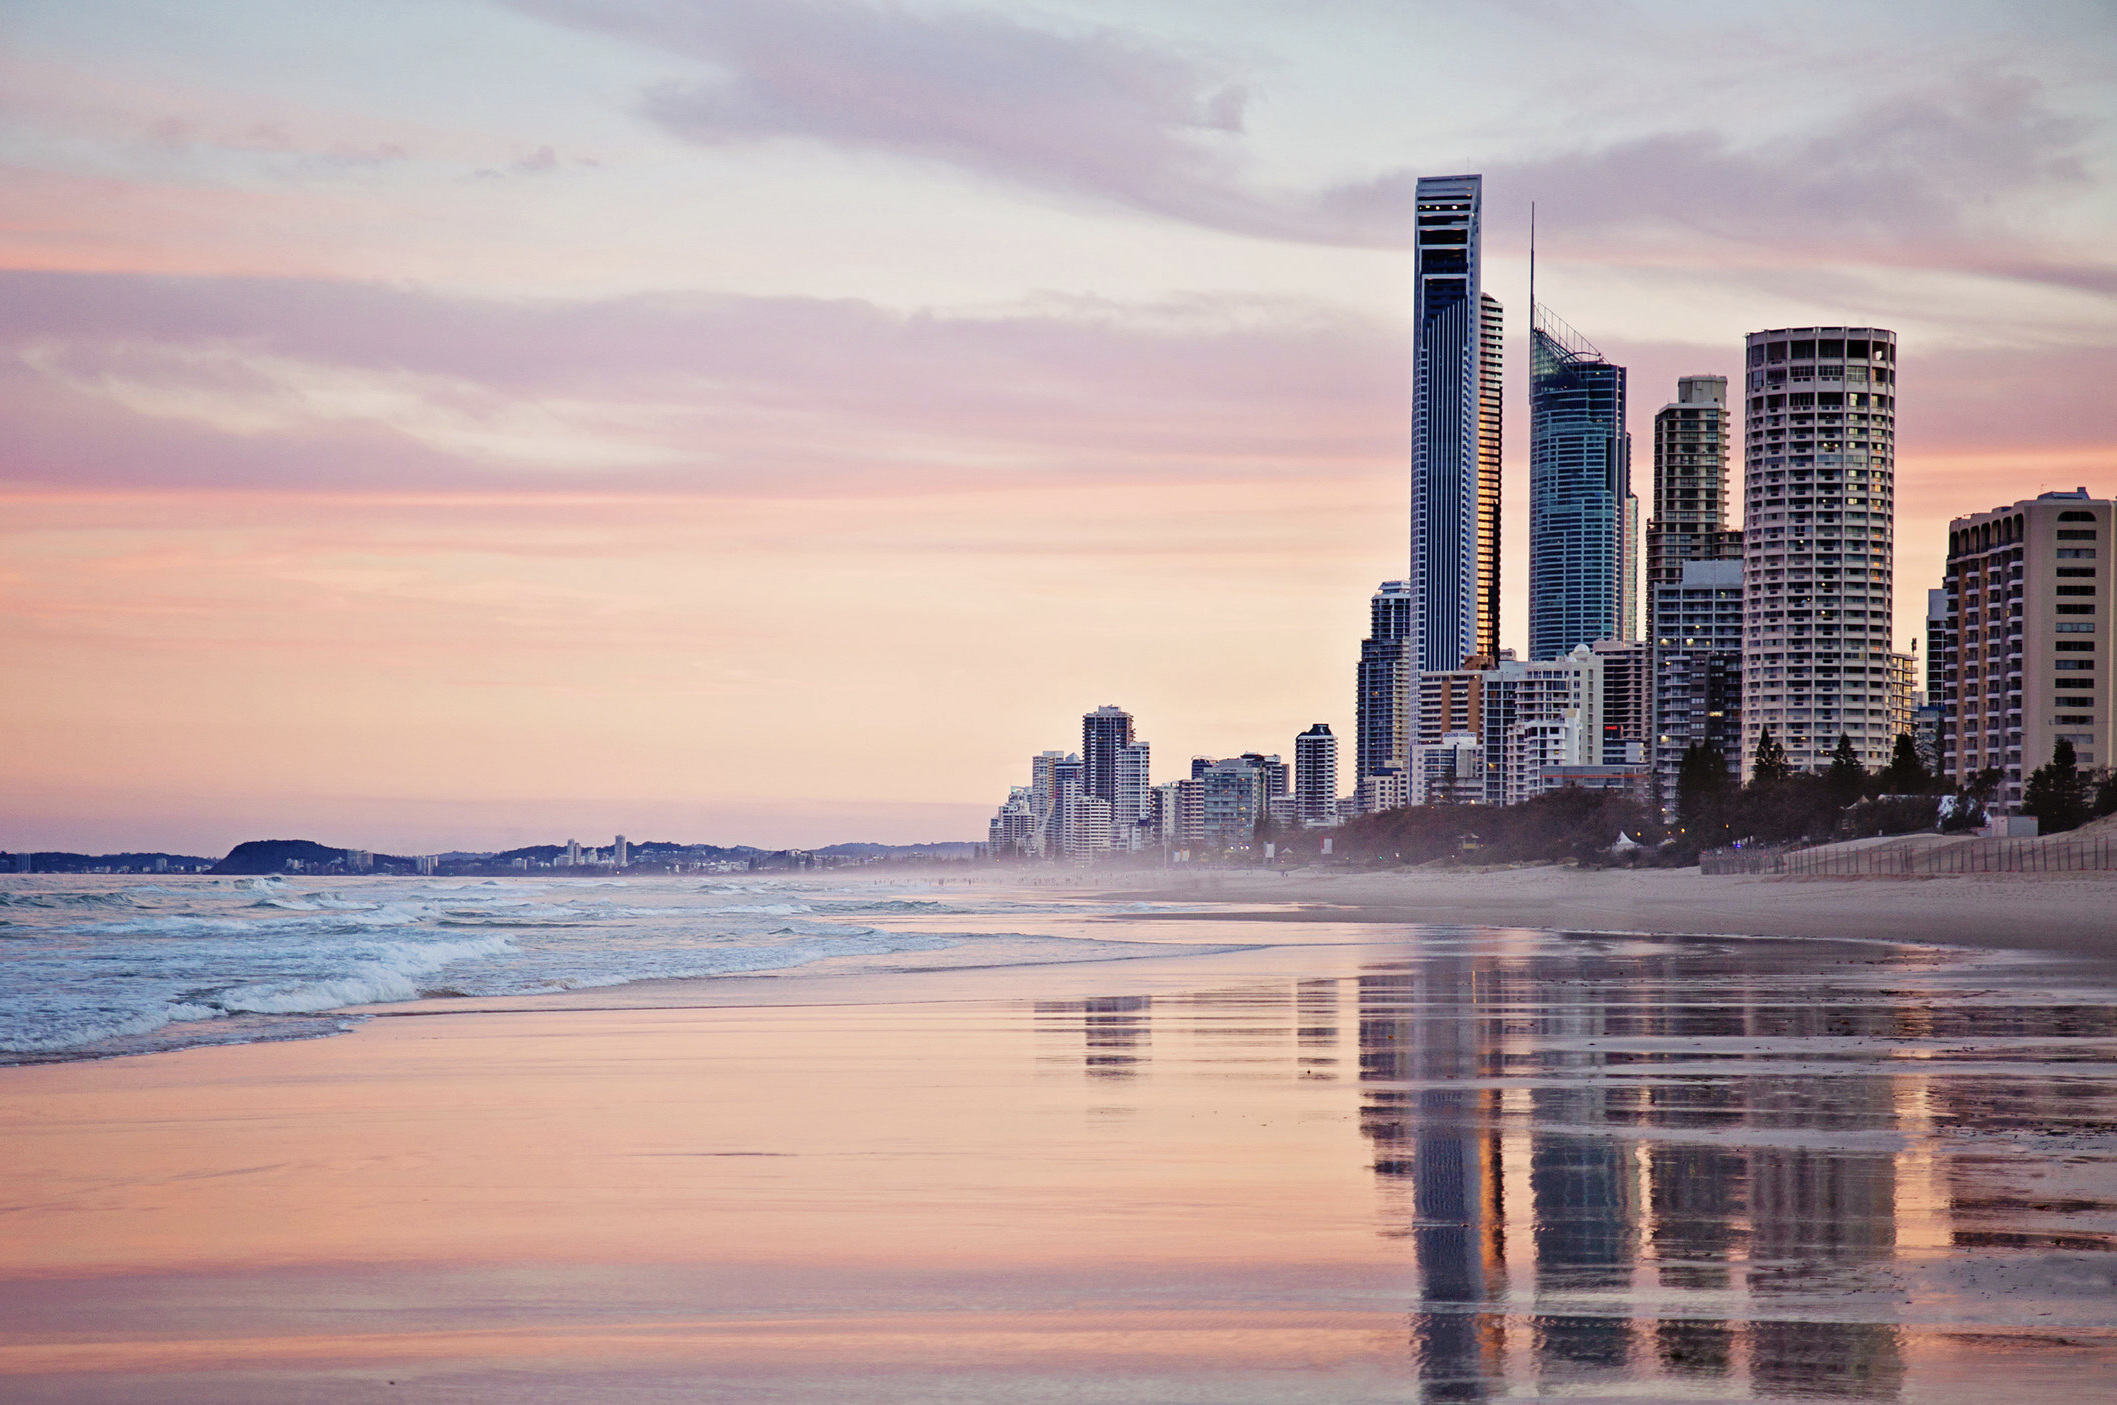 Practice Location - Gold Coast Breast & Endocrine Surgery is located at John Flynn Private Hospital, on the Gold Coast, Queensland.